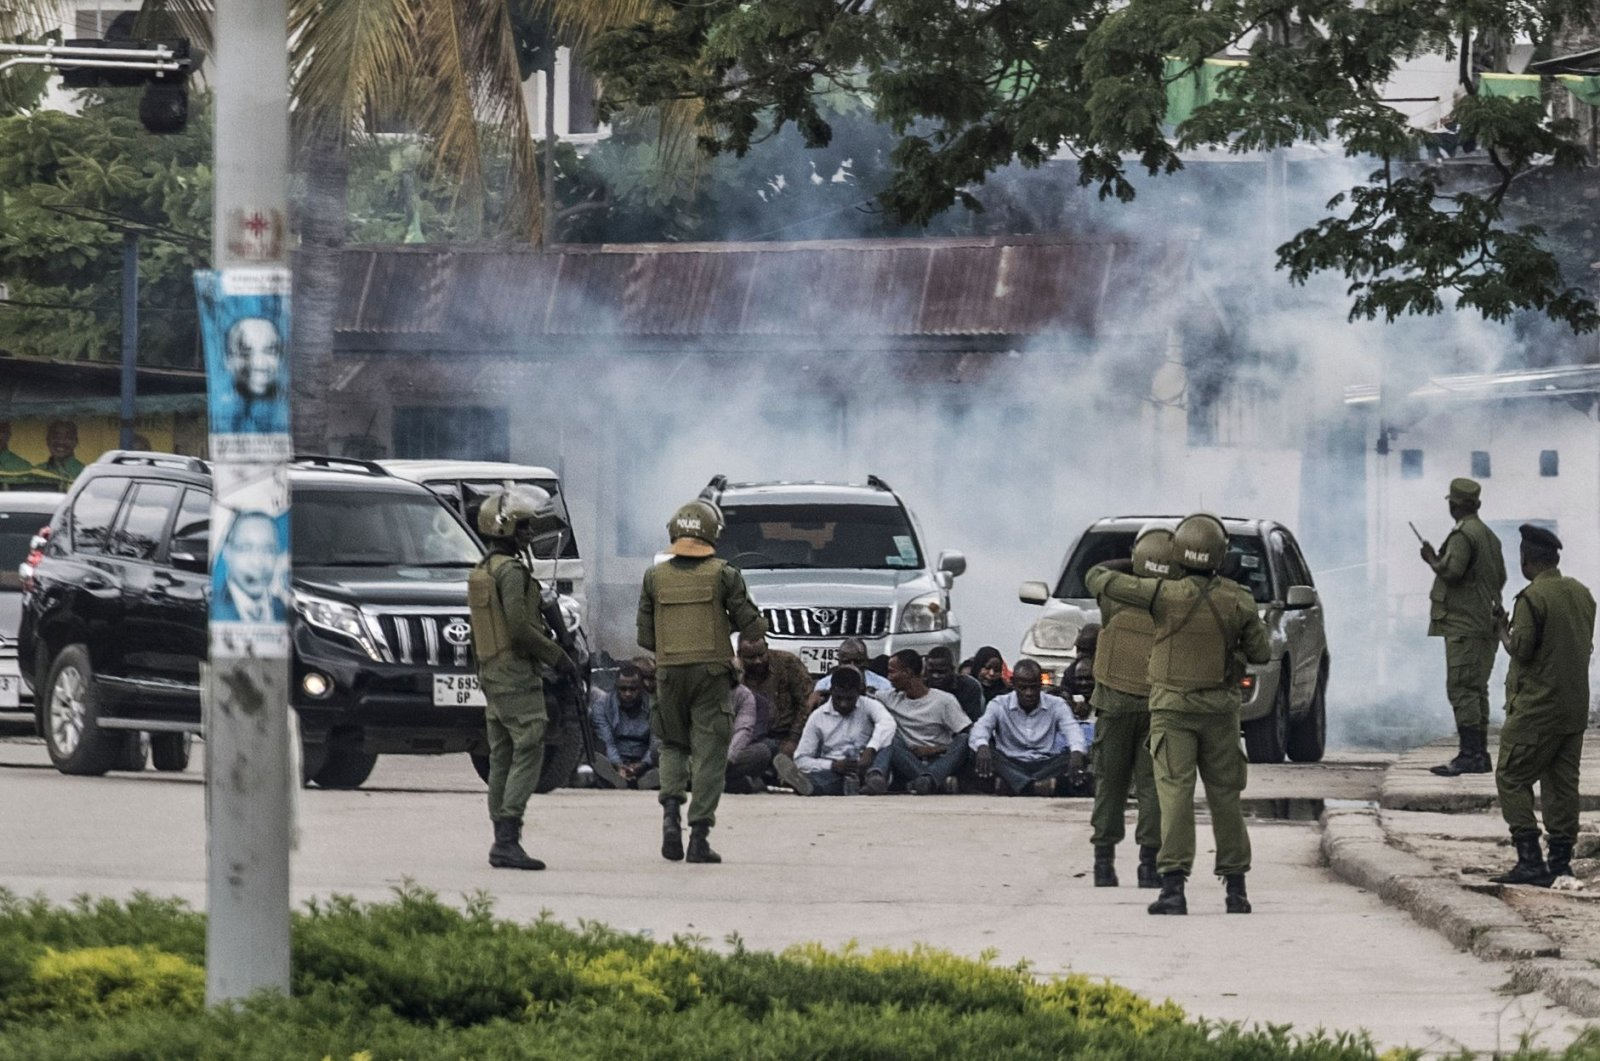 Zanzibar's anti-riot police officers stand guard by a group of men sitting on the ground during an operation after the opposition called for protests in Stone Town, on Oct. 29, 2020. (AFP Photo)